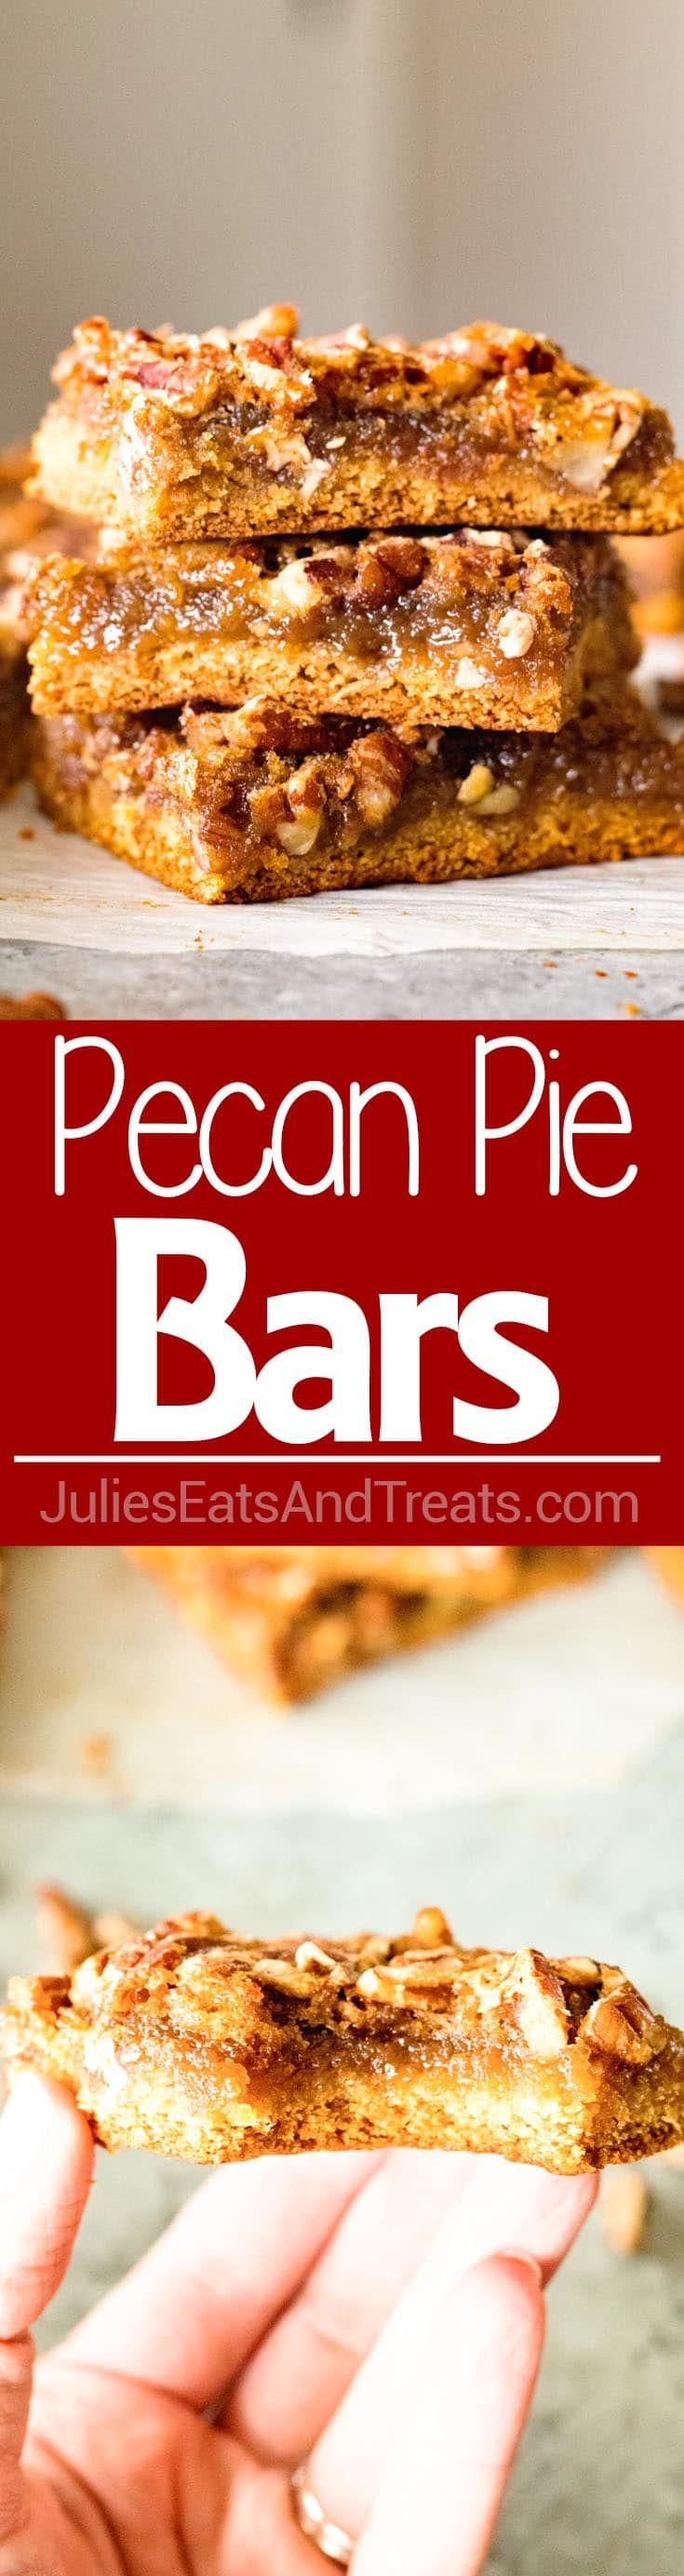 Easy Pecan Pie Bars ~ Delicious, Buttery Pecan Pie Bar Recipe with a Cake Mix Crust, Gooey Middle and Loaded with Pecans! This Recipe Will Be Your New Favorite For the Holidays! via @julieseats